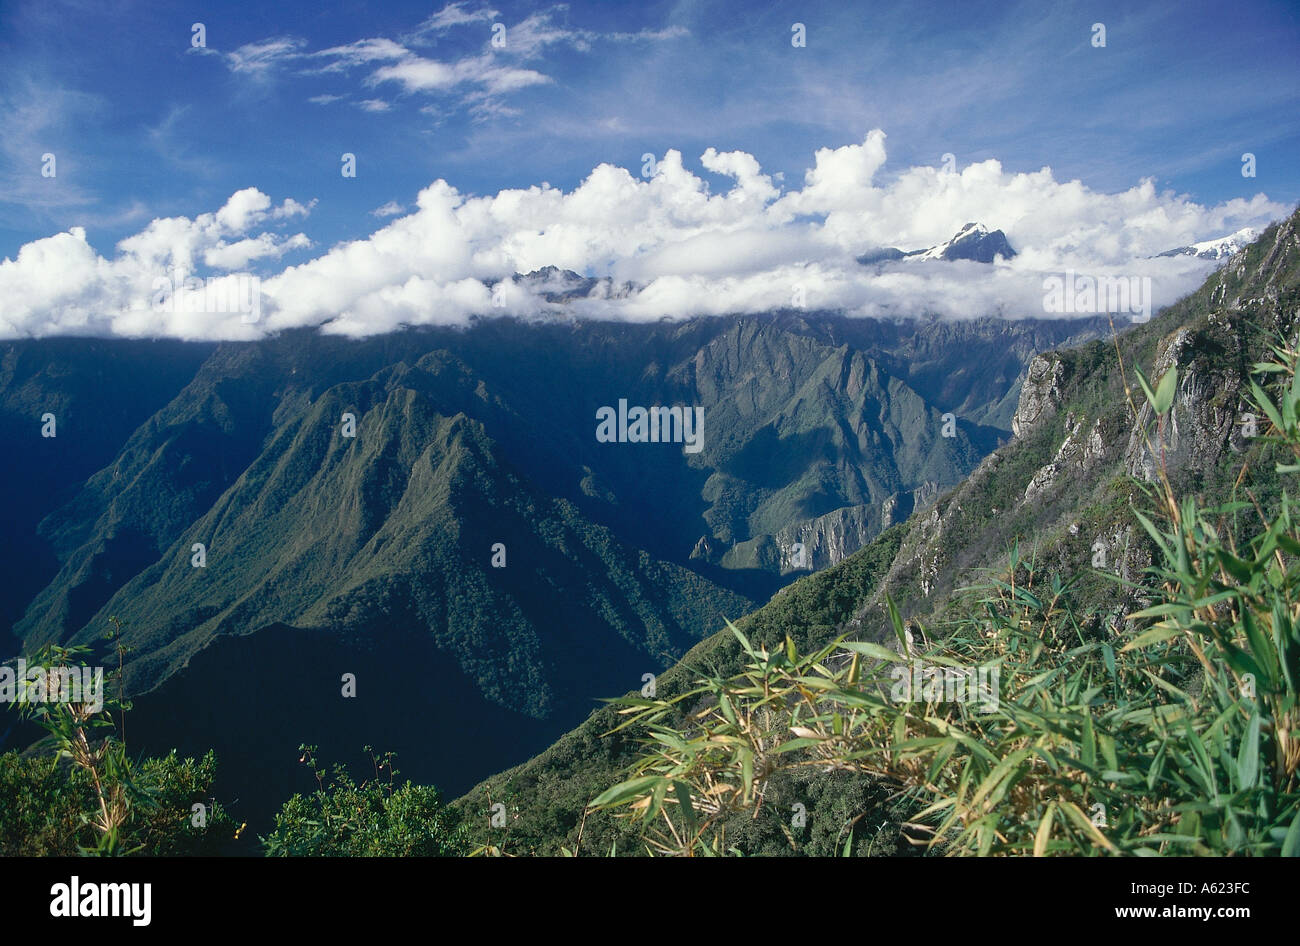 Mountain living near cusco peru royalty free stock photo -  Peru South America Andes Mountains Cusco Inca Trail Mountain View From Machu Pichu With Clouds Covering